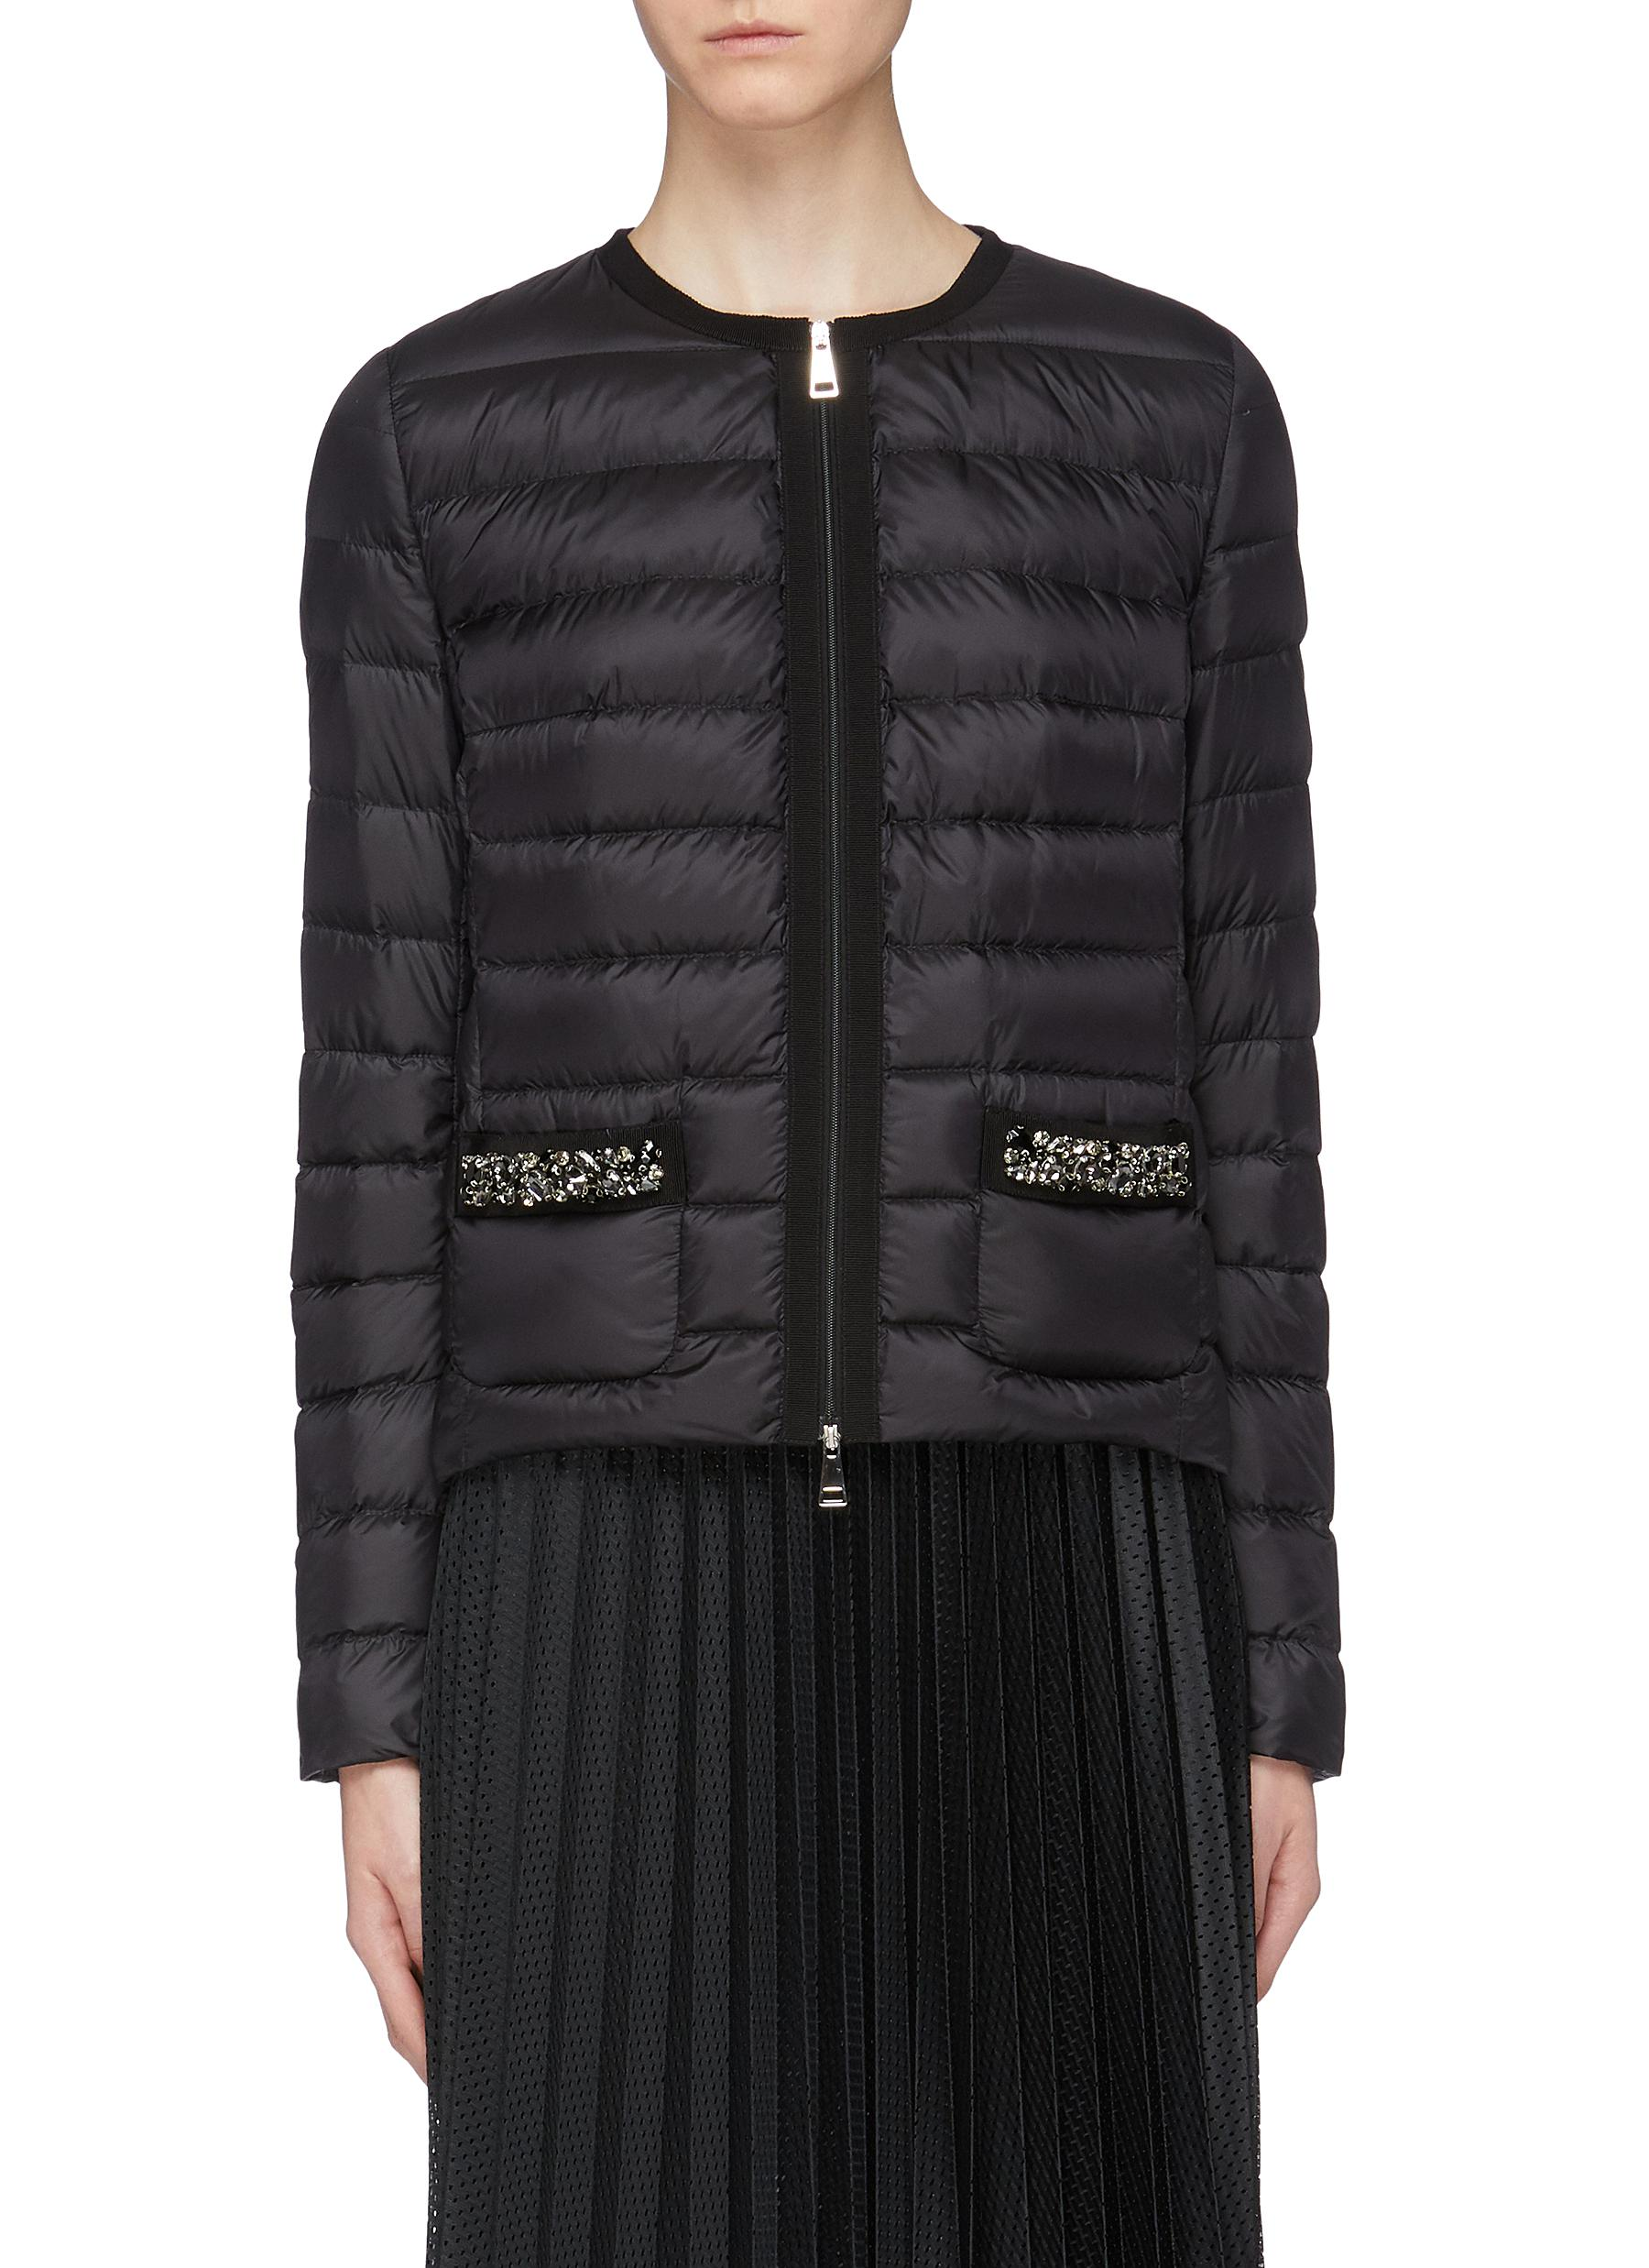 877c910eaea Main View - Click To Enlarge - Moncler -  Christalline  embellished pocket  down puffer